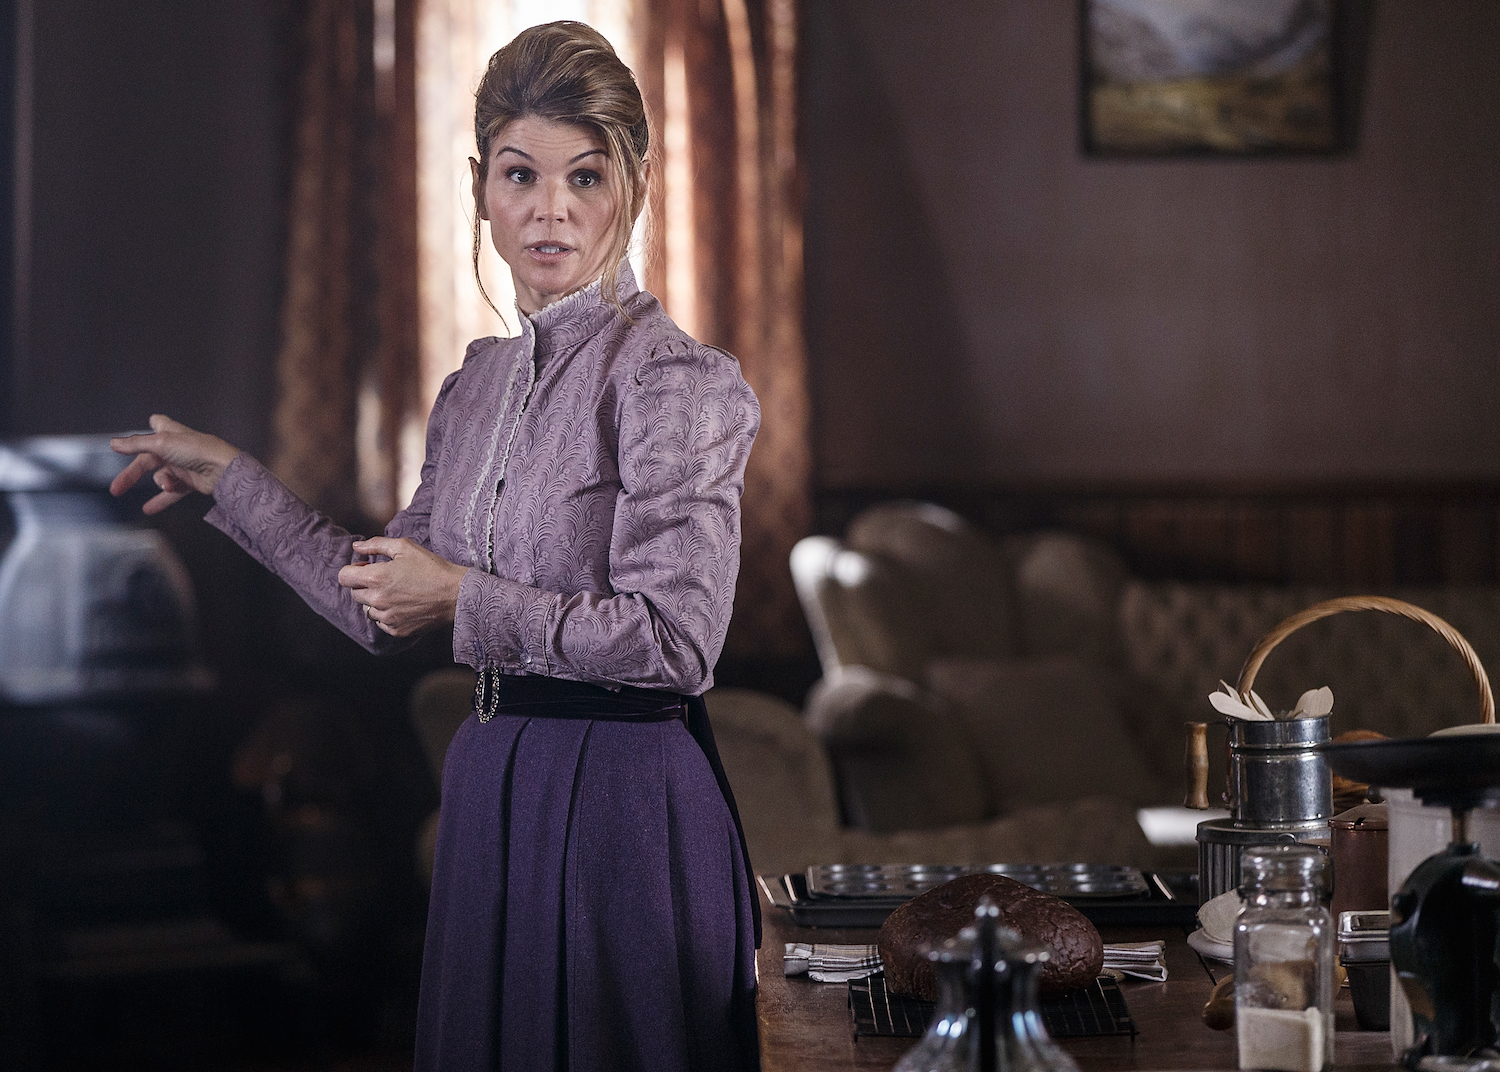 Lori Loughlin, in a purple blouse and skirt, shooting a scene for When Calls the Heart